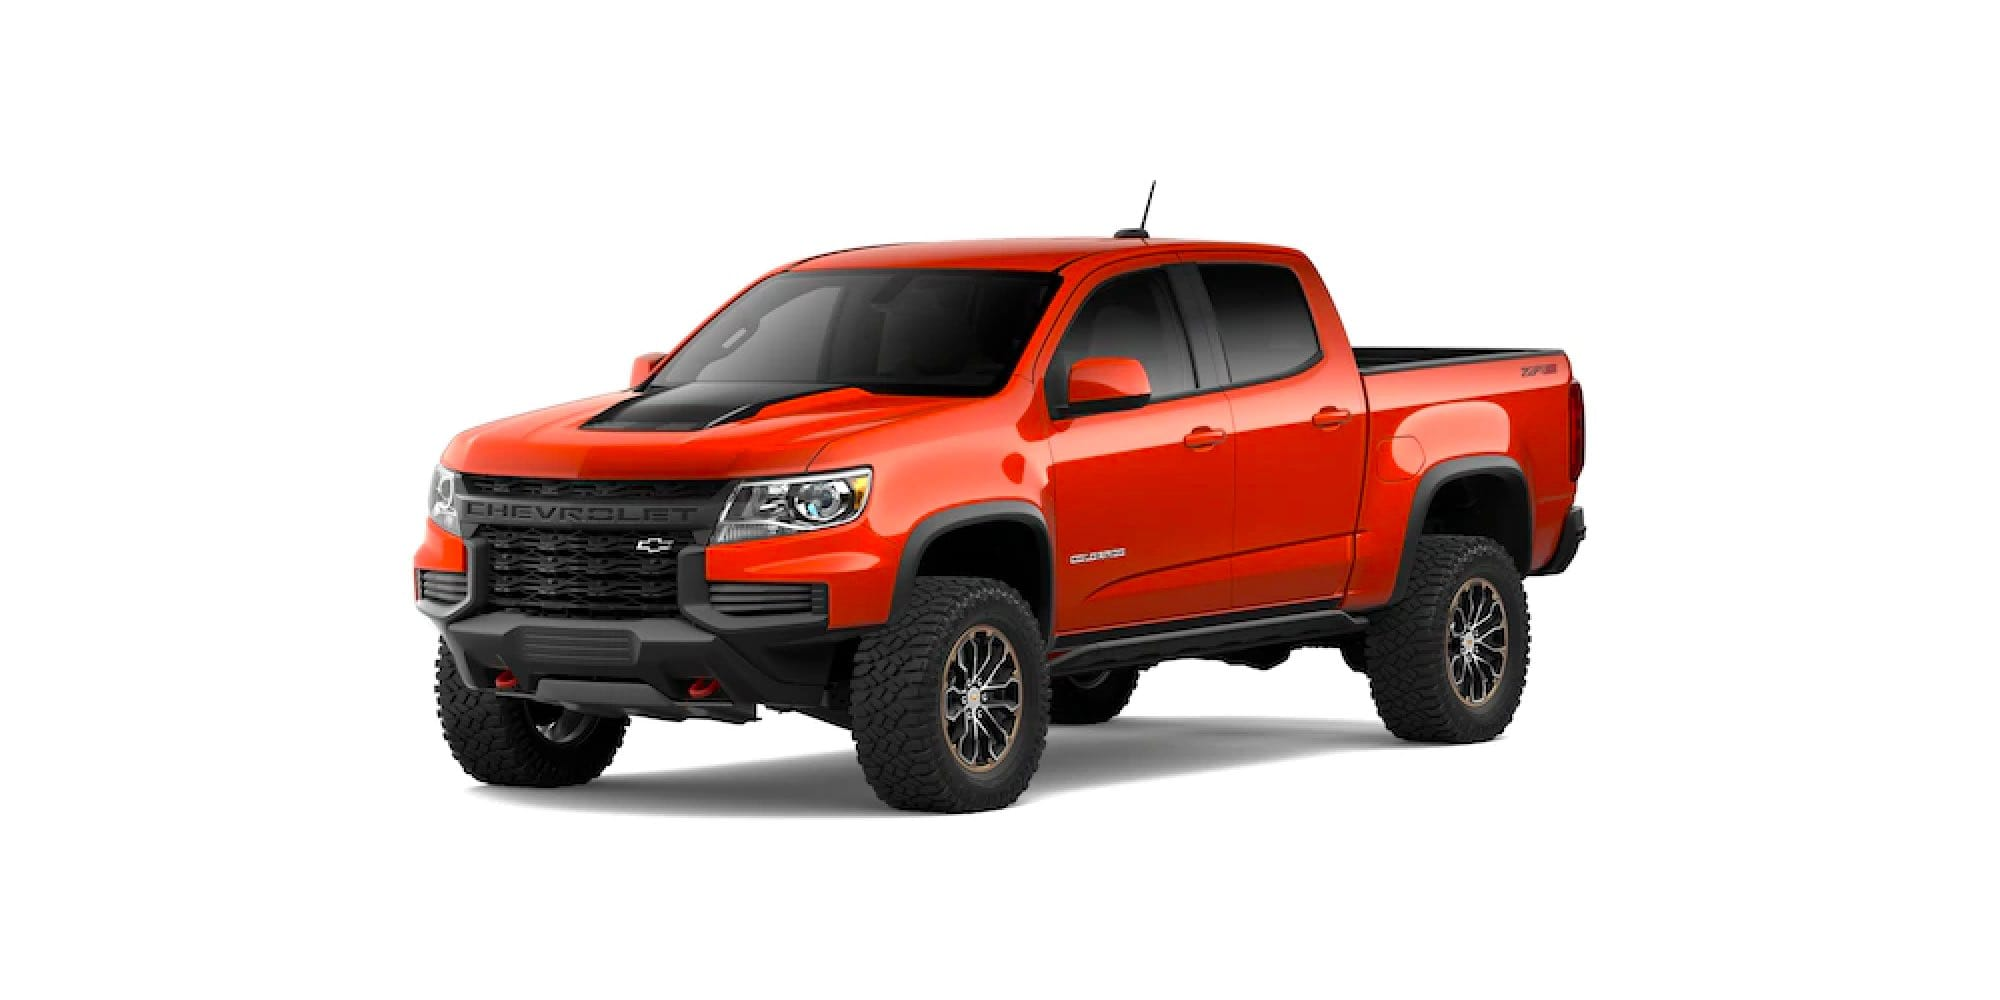 2021 Chevy Silverado in Crush